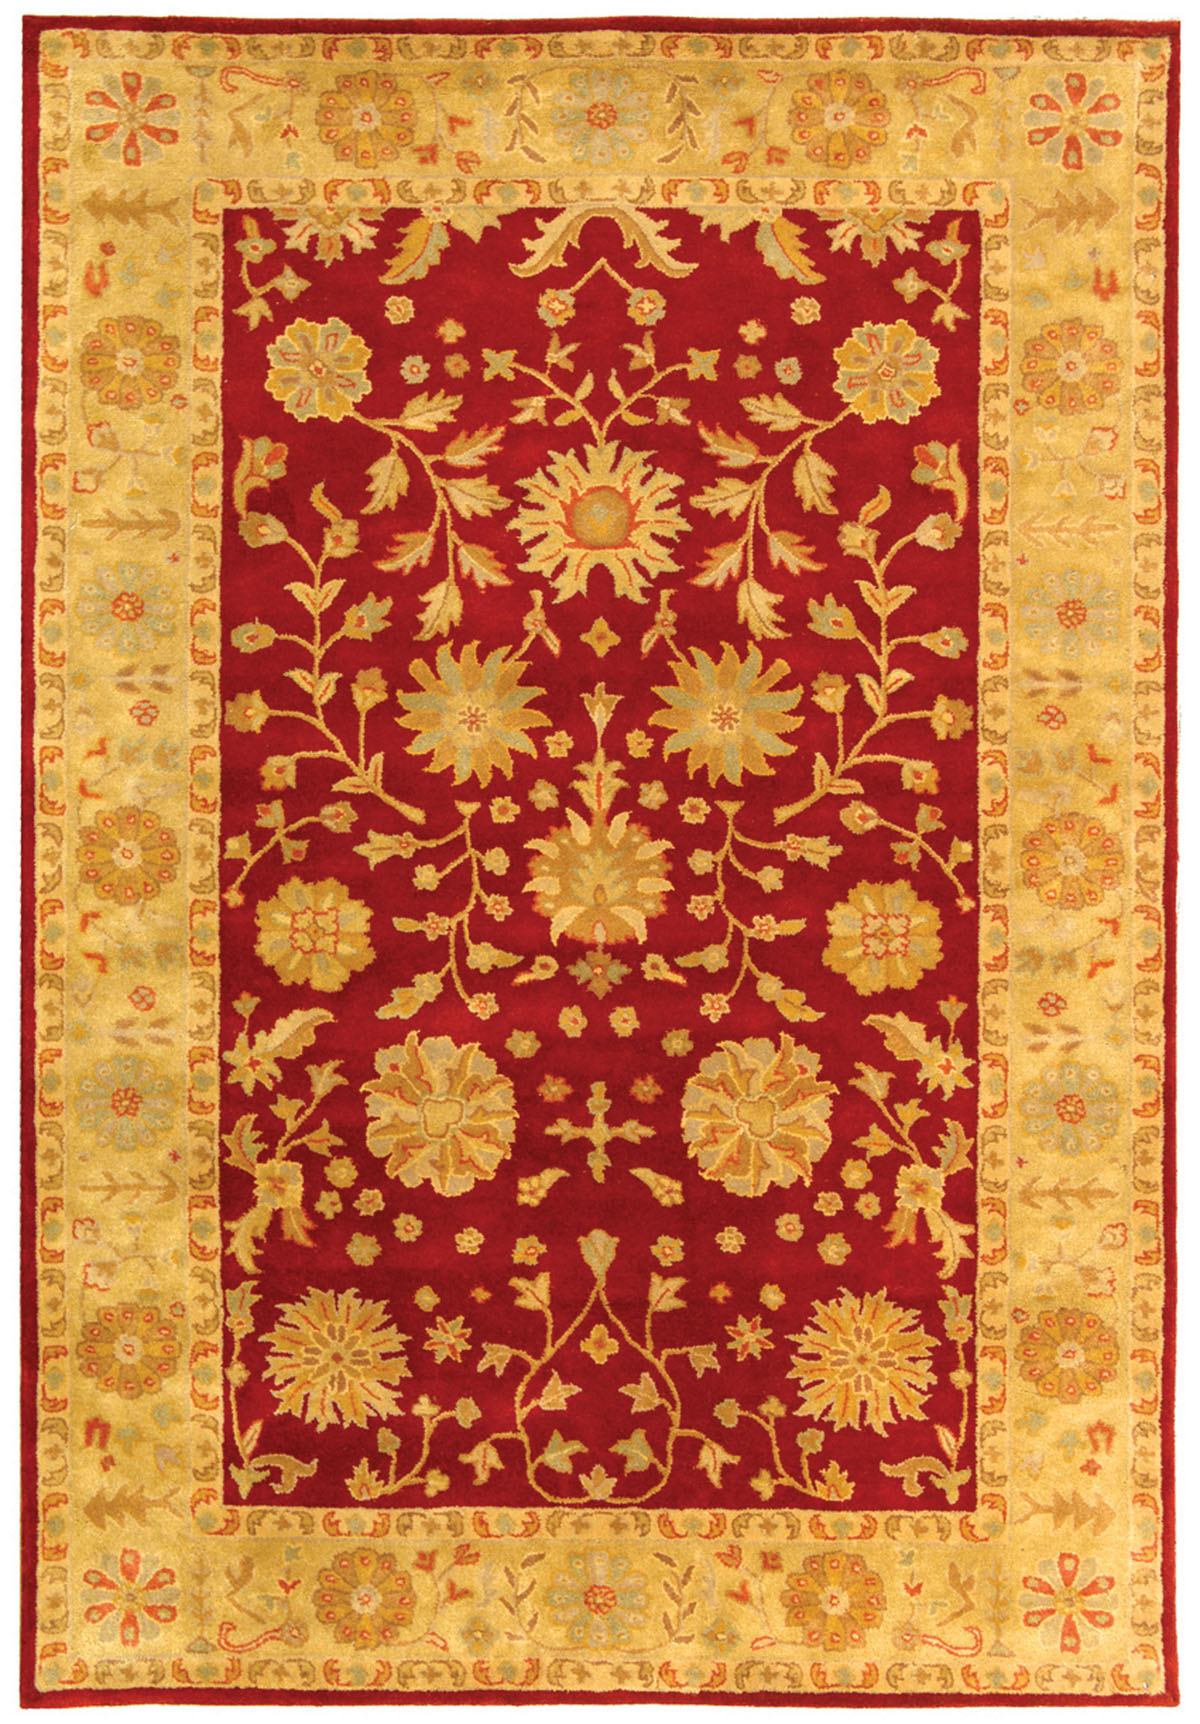 Safavieh Heritage Hg813a Red And Gold Area Rug Free Shipping